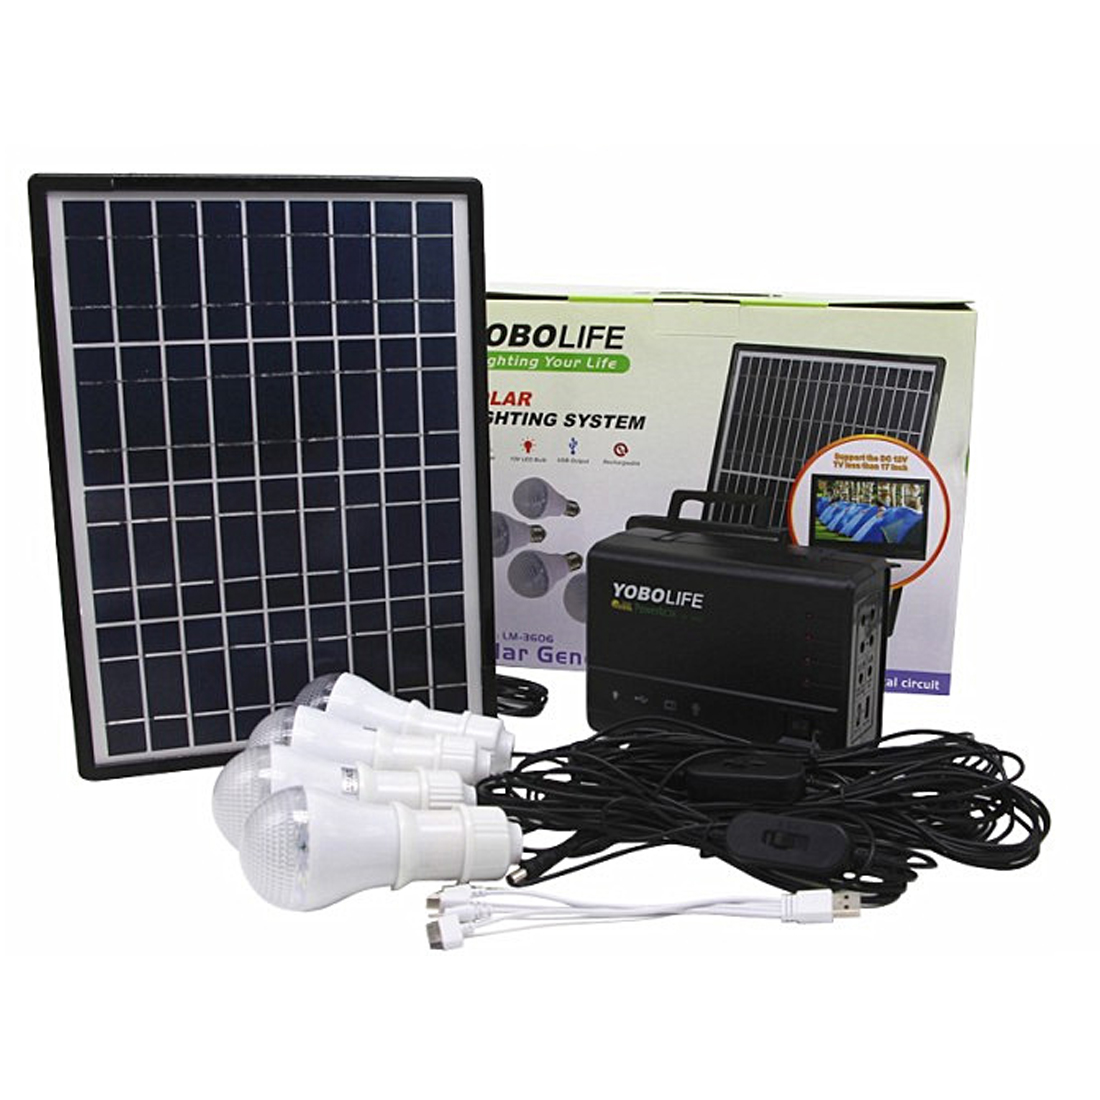 SOPATiO 12V Solar Power Panel Generator Energy Kit Portable Outdoor Solar Energy Power Bank Battery Chargers Lighting System new chargers bracelet silicone wrist battery band power bank portable usb battery bank chargers for iphone4 6 7 psp samsung htc